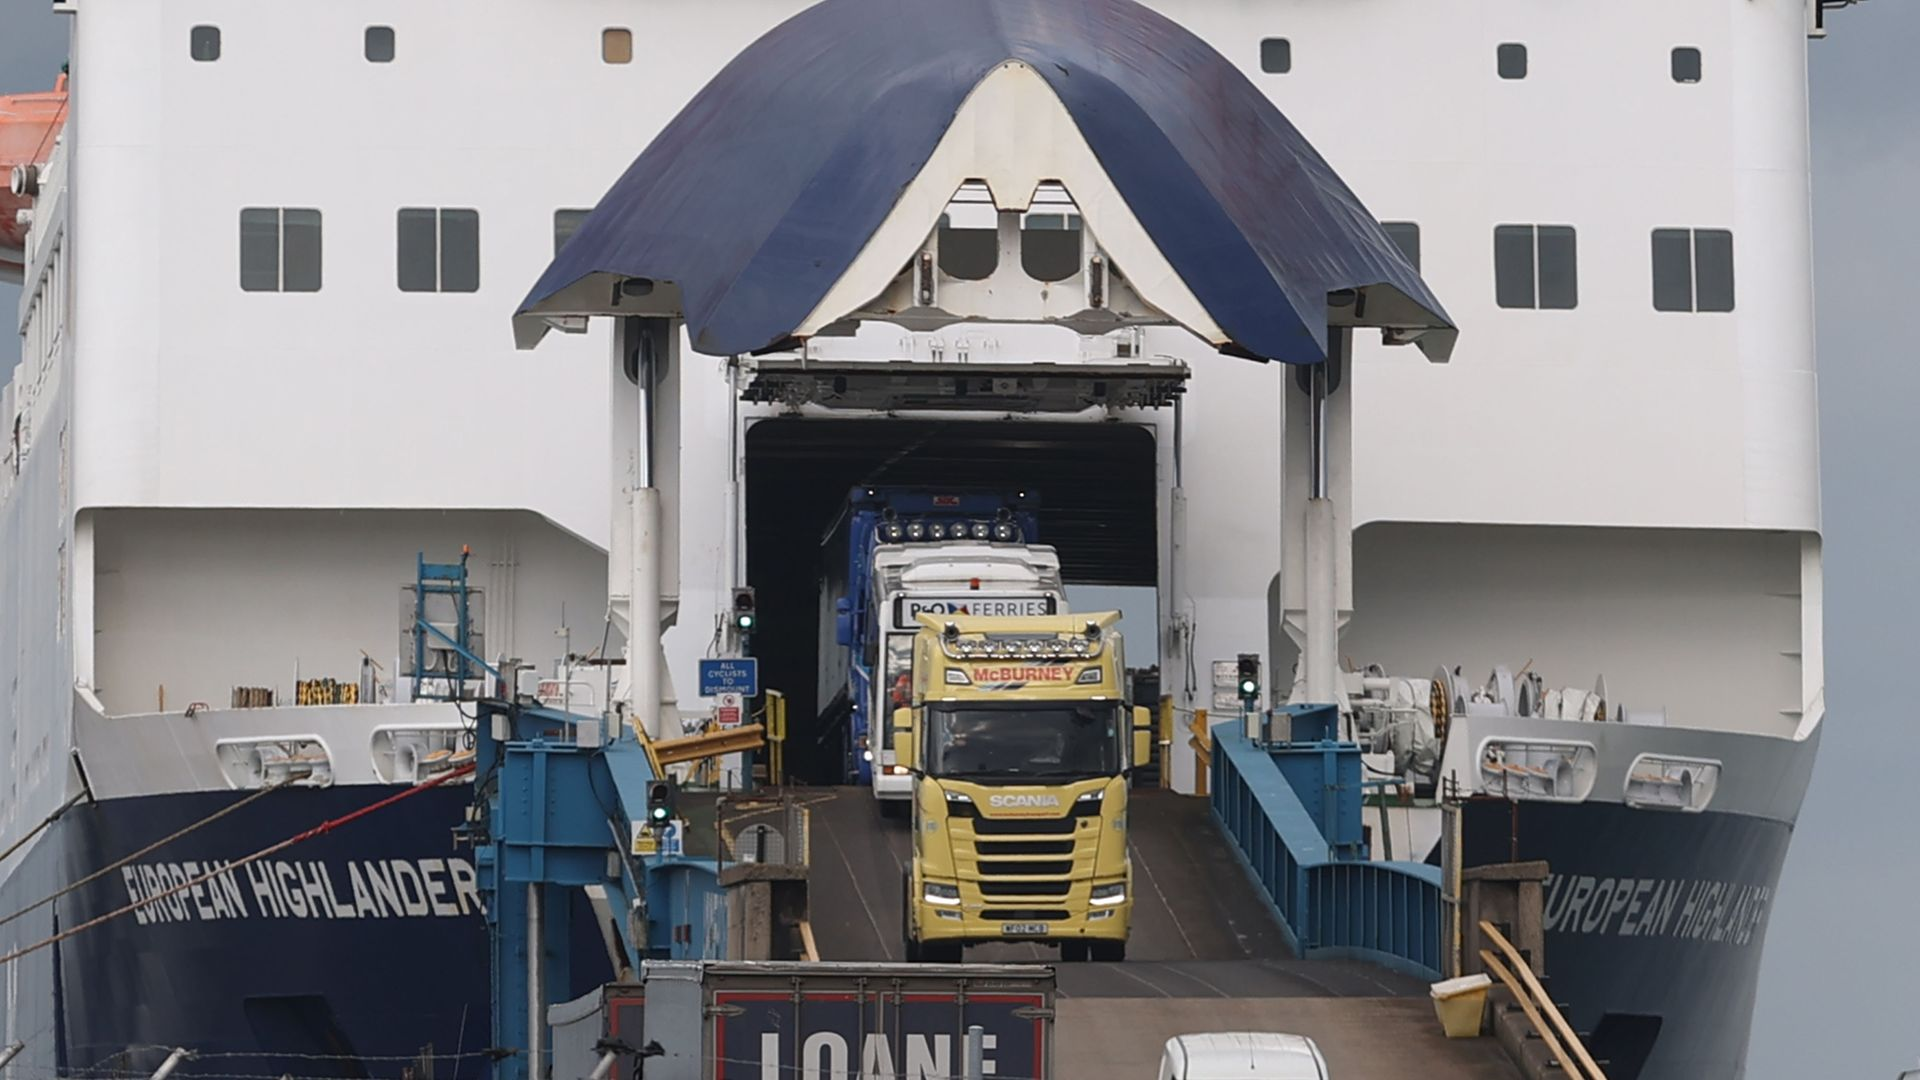 Lorries driving off the European Highlander P&O ferry at the Port of Larne, Northern Ireland - Credit: PA